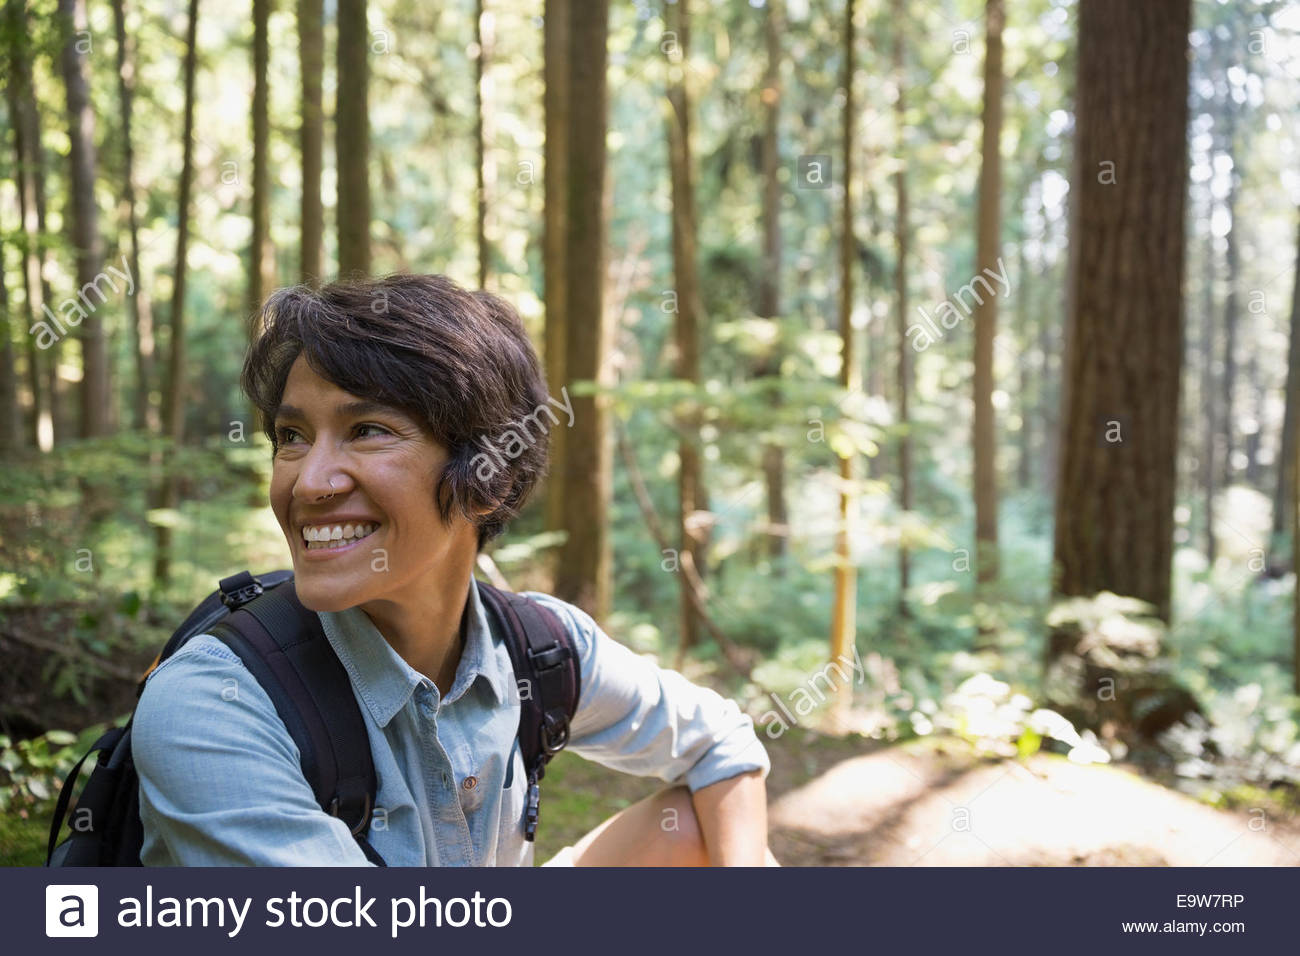 Smiling woman looking over shoulder in woods - Stock Image